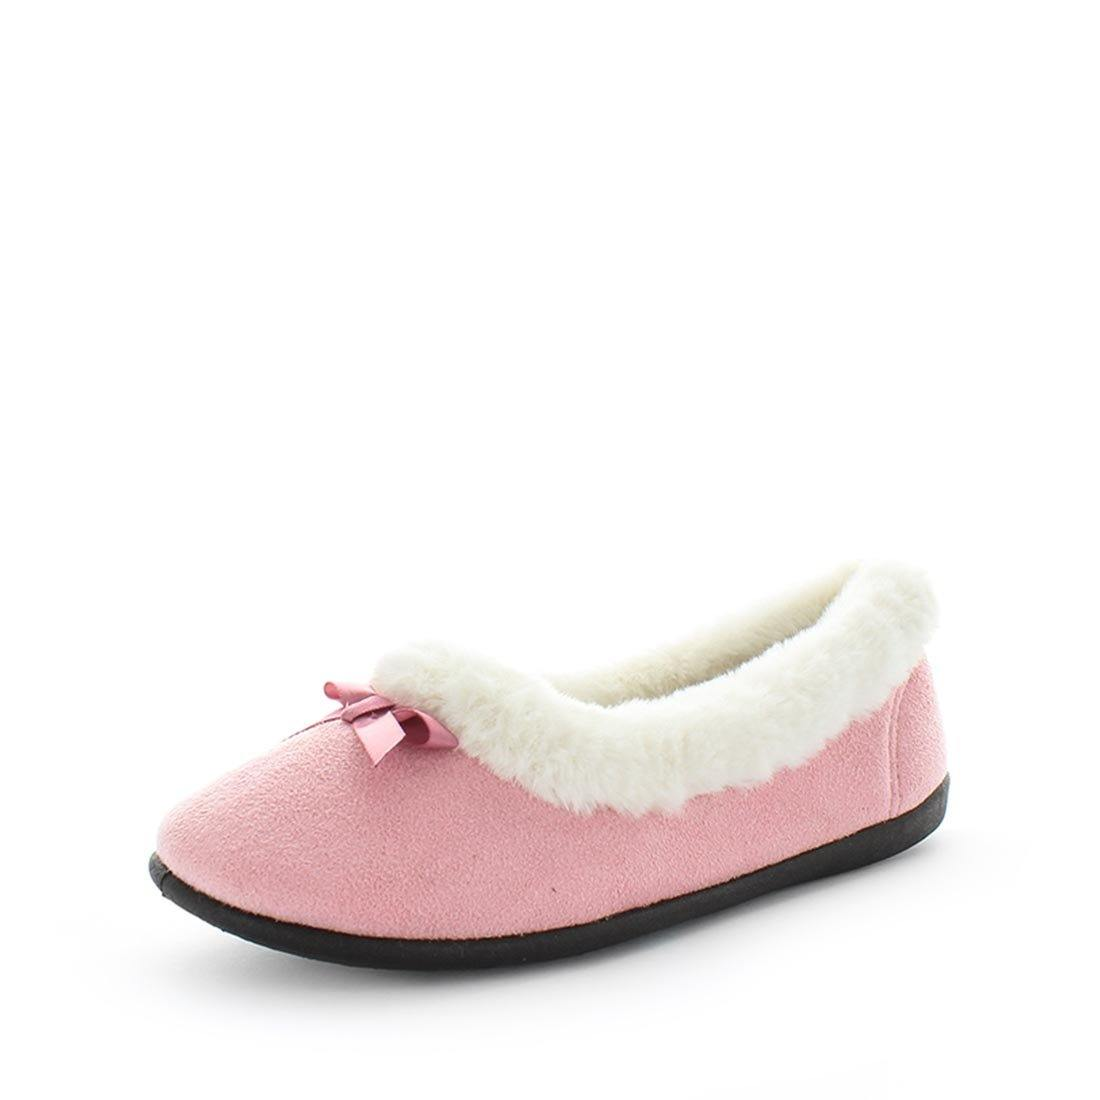 Elmo by panda slippers - ishoes - womens slippers - memory foam slippers - womens ballet slippers - all year slippers - cute felt ballet slipper by panda slippers with microterry lining, faux fur collar trim and a memory foam sock for extra comfort